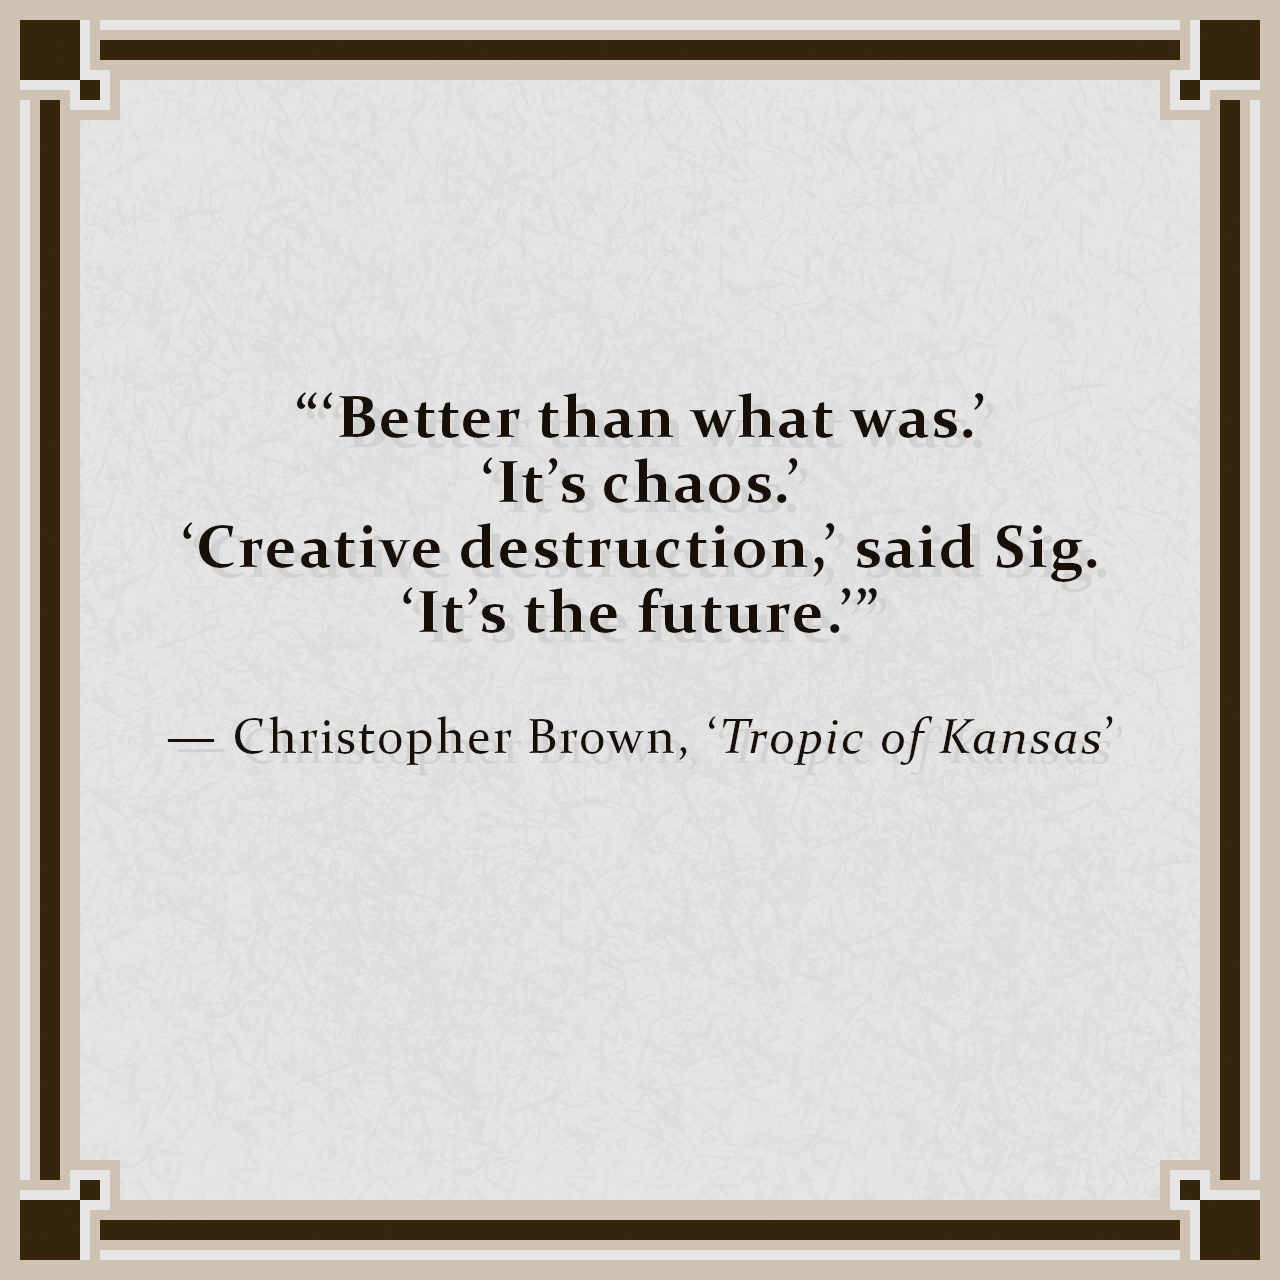 """""""'Better than what was.' 'It's chaos.' 'Creative destruction,' said Sig. 'It's the future.'"""" — Christopher Brown, 'Tropic of Kansas'"""